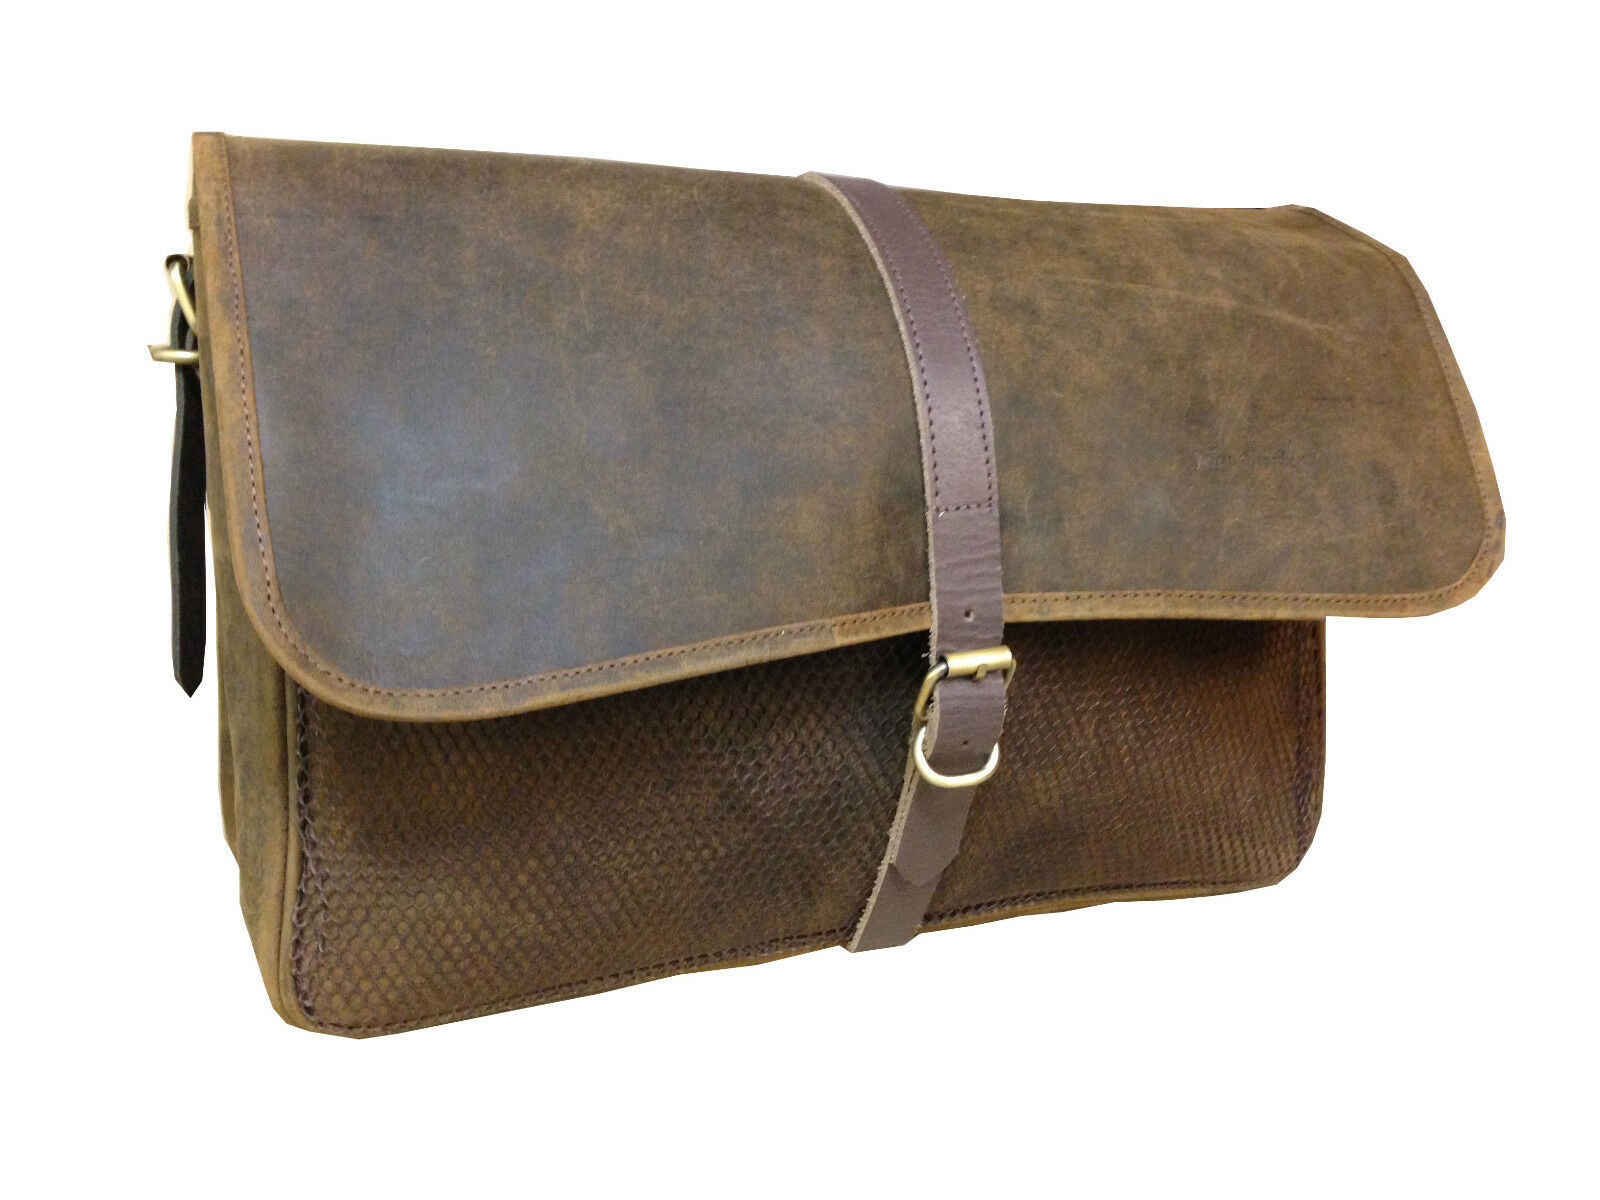 BROWN LEATHER SHOOTING GAME FISHING BAG WITH DETACHABLE LINING